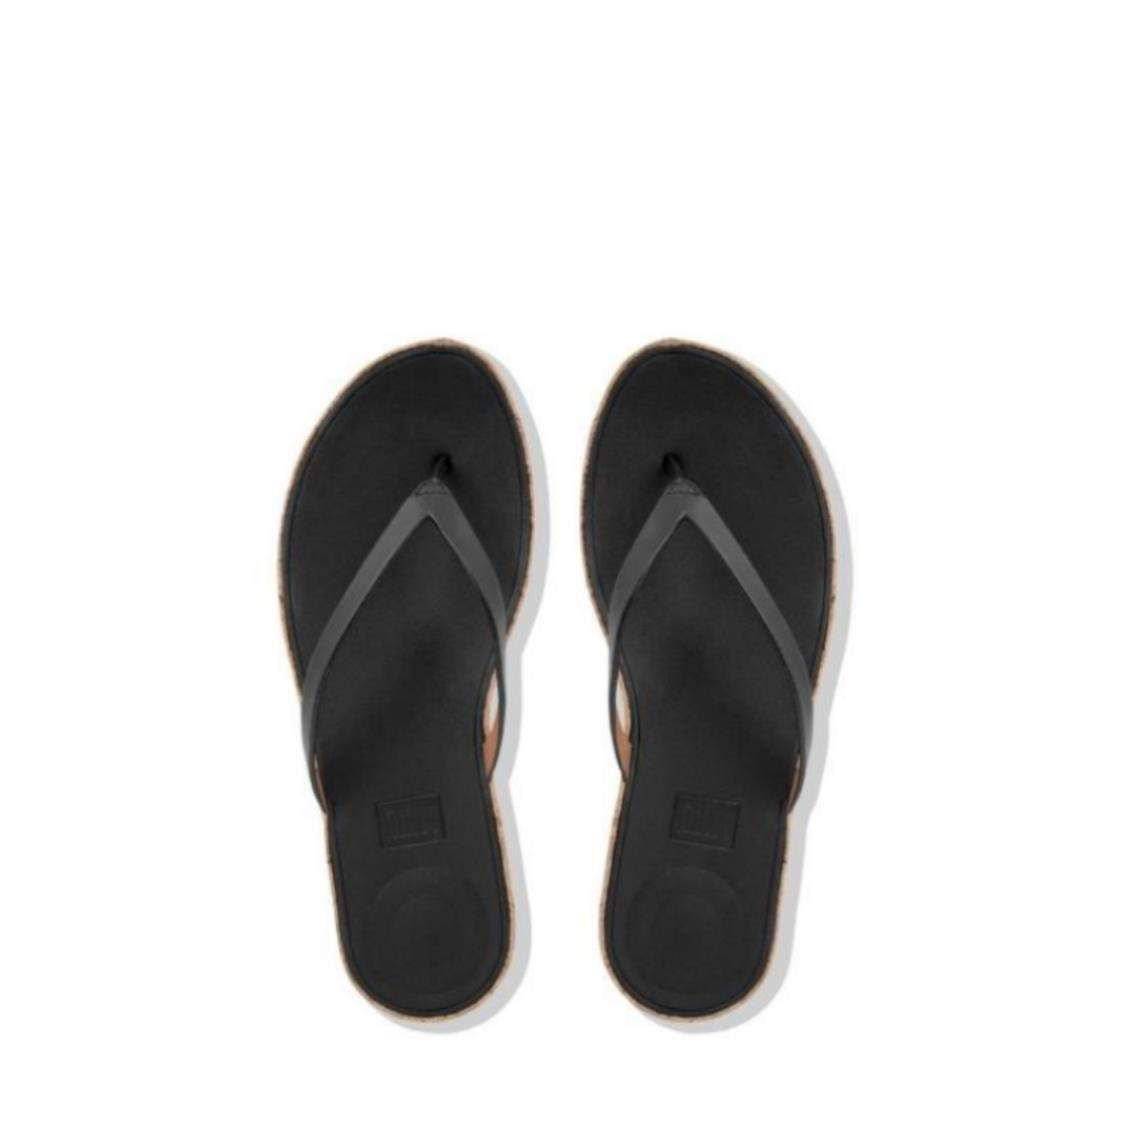 Linny Leather Toe-Thong Sandals Black